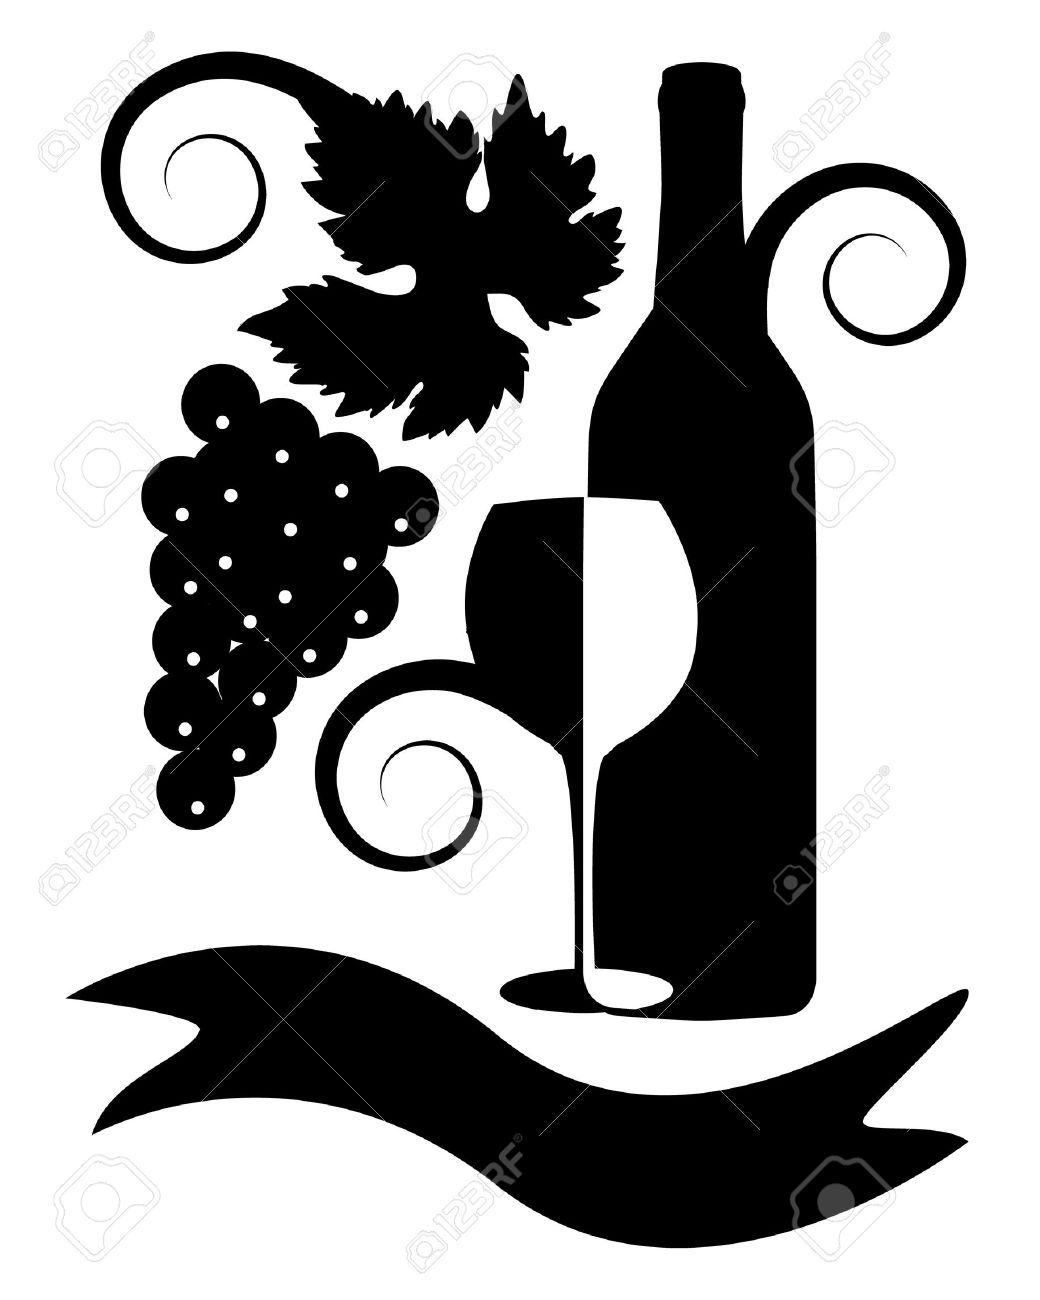 black-and-white image of a bottle of wine, a glass, ribbon, a bunch of grapes, leaves and curls Stock Vector - 15733014